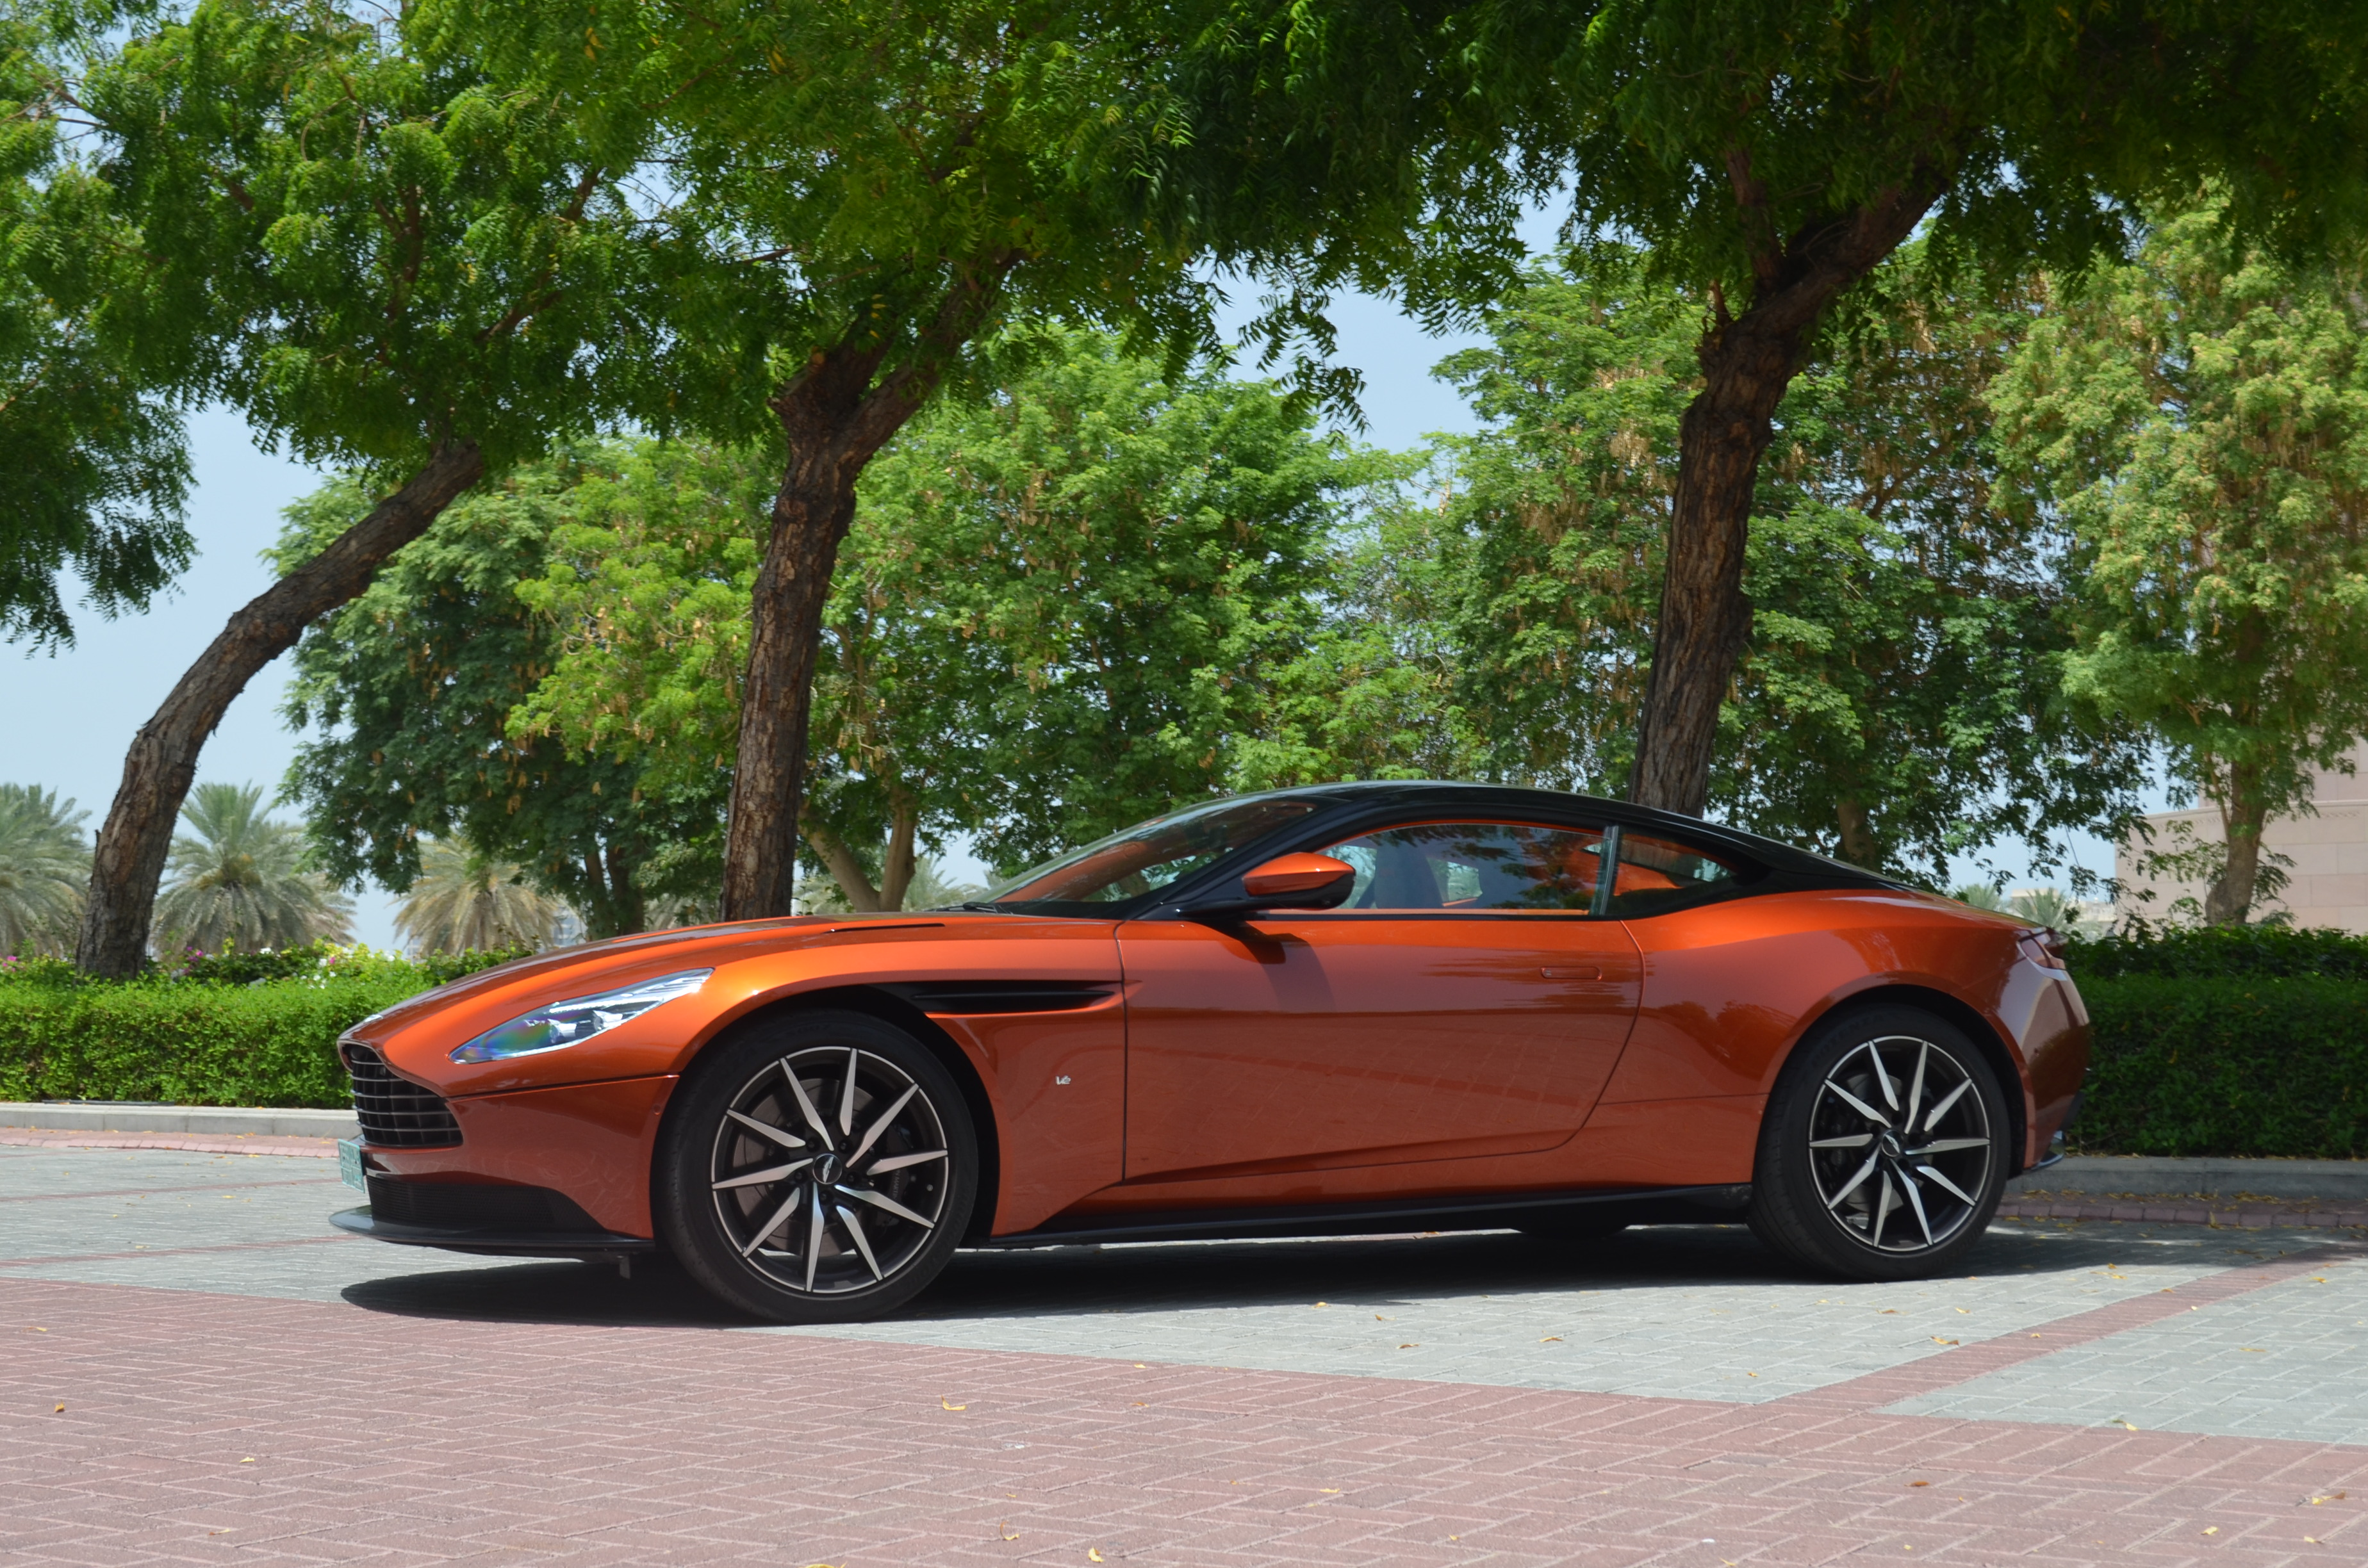 DB 11: The most powerful model in Aston Martin's history